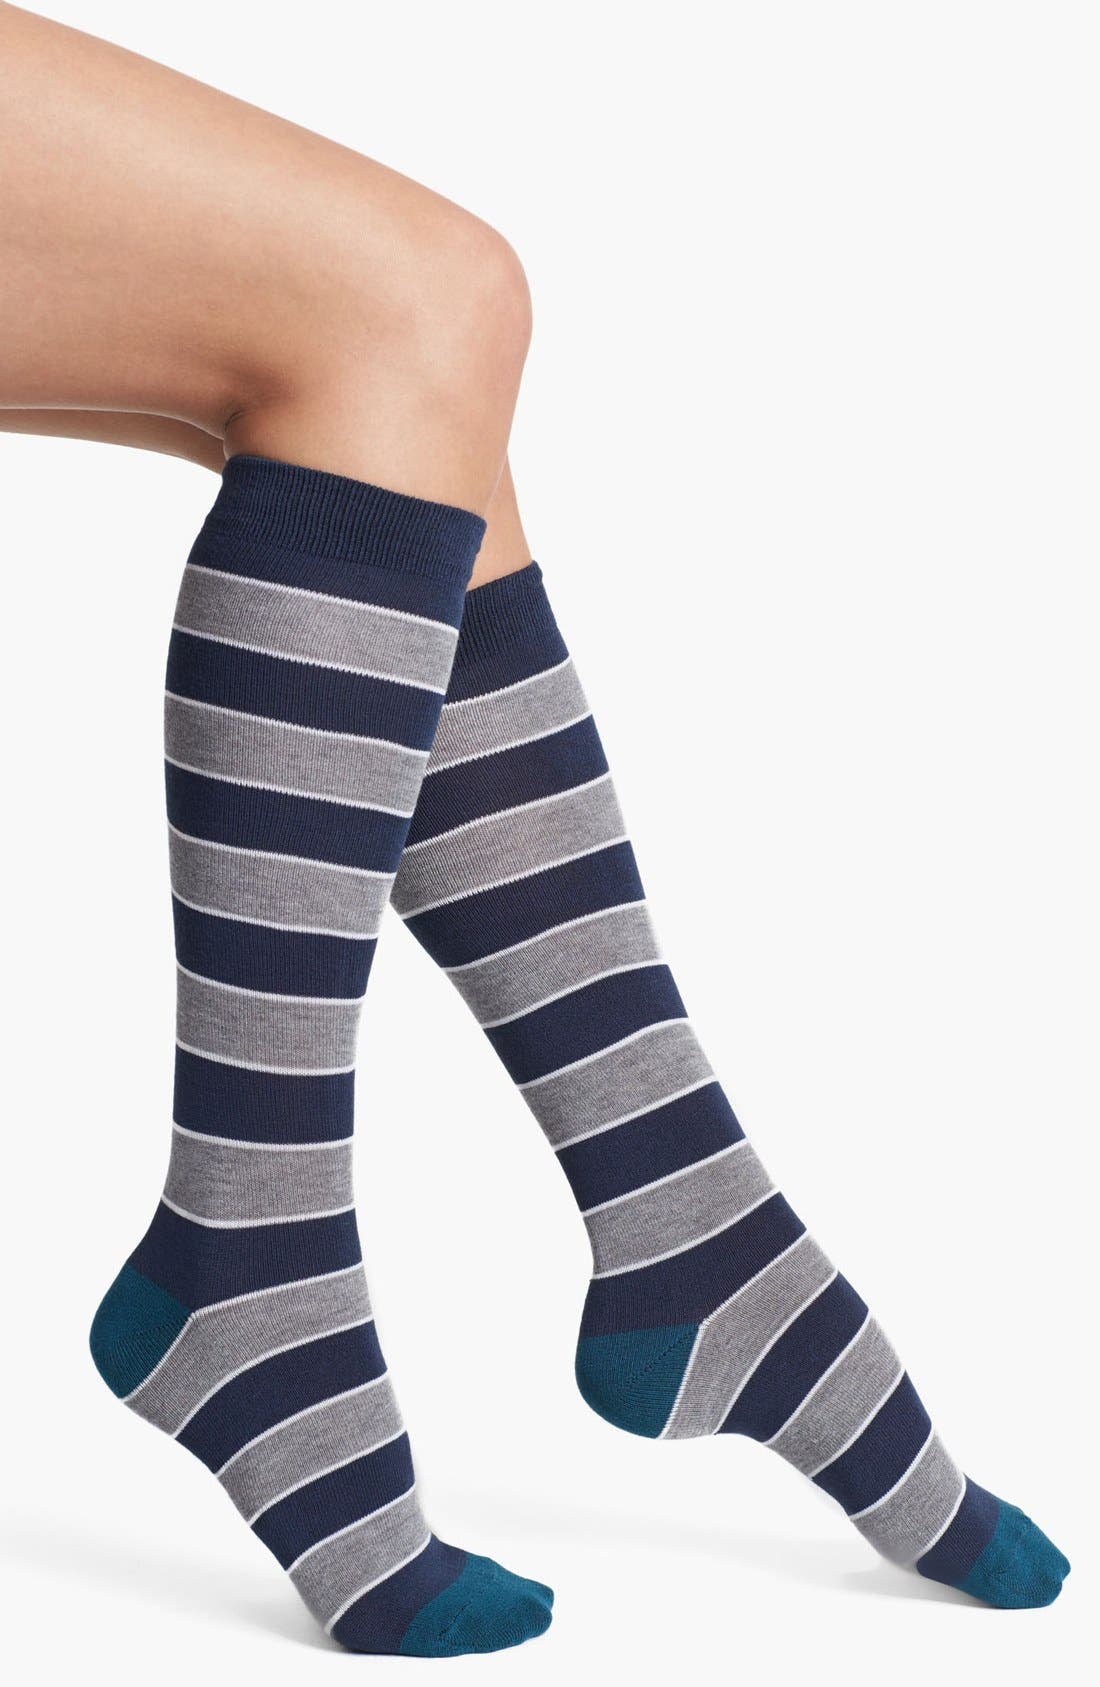 Main Image - Nordstrom 'Soft Touch' Stripe Knee High Socks